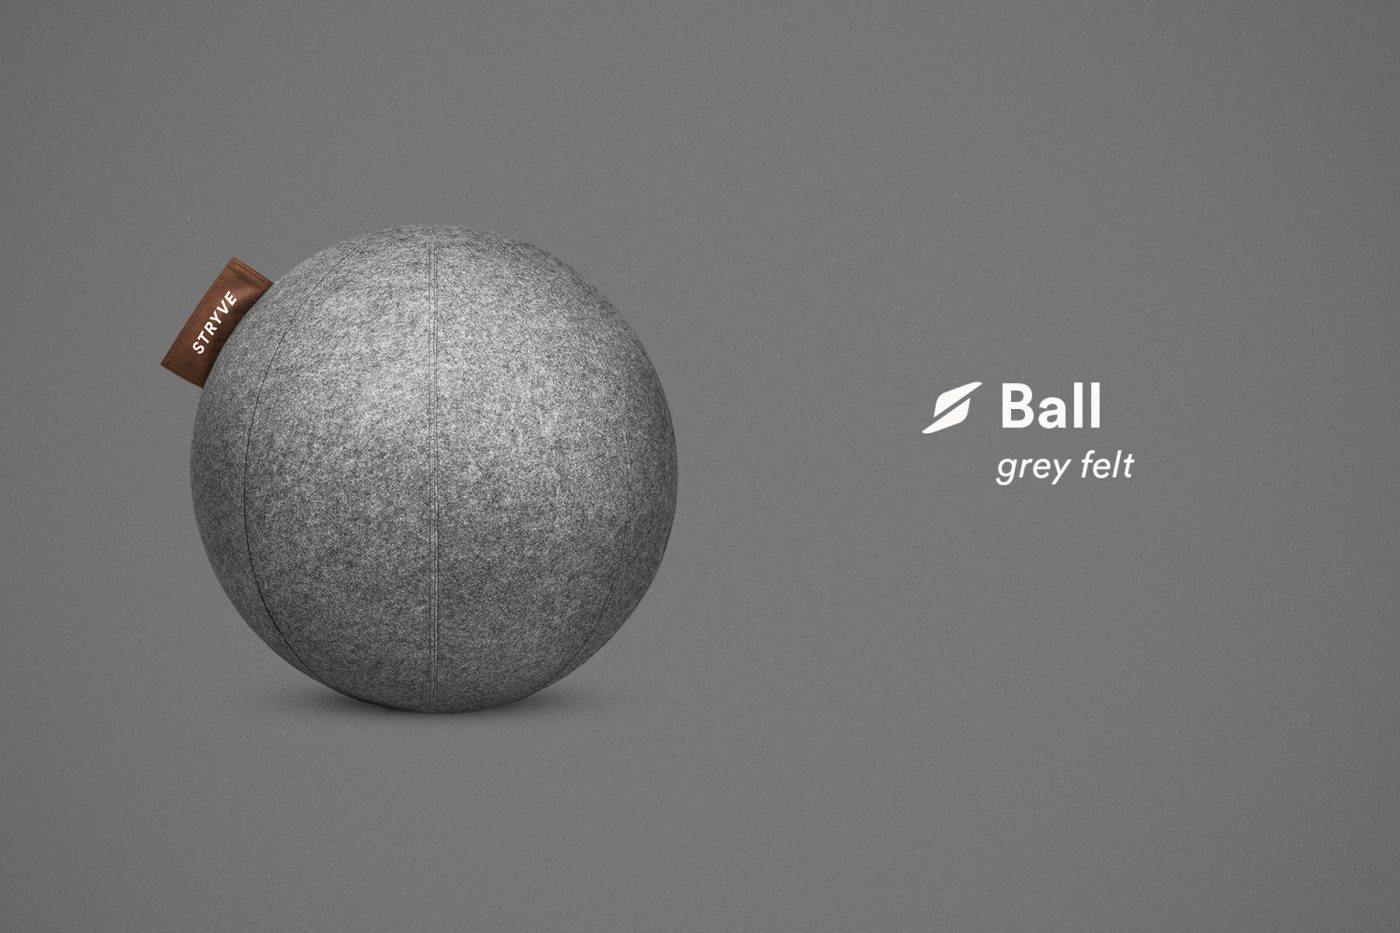 stryve-ball-beautiful-design-grafik-kommunikation